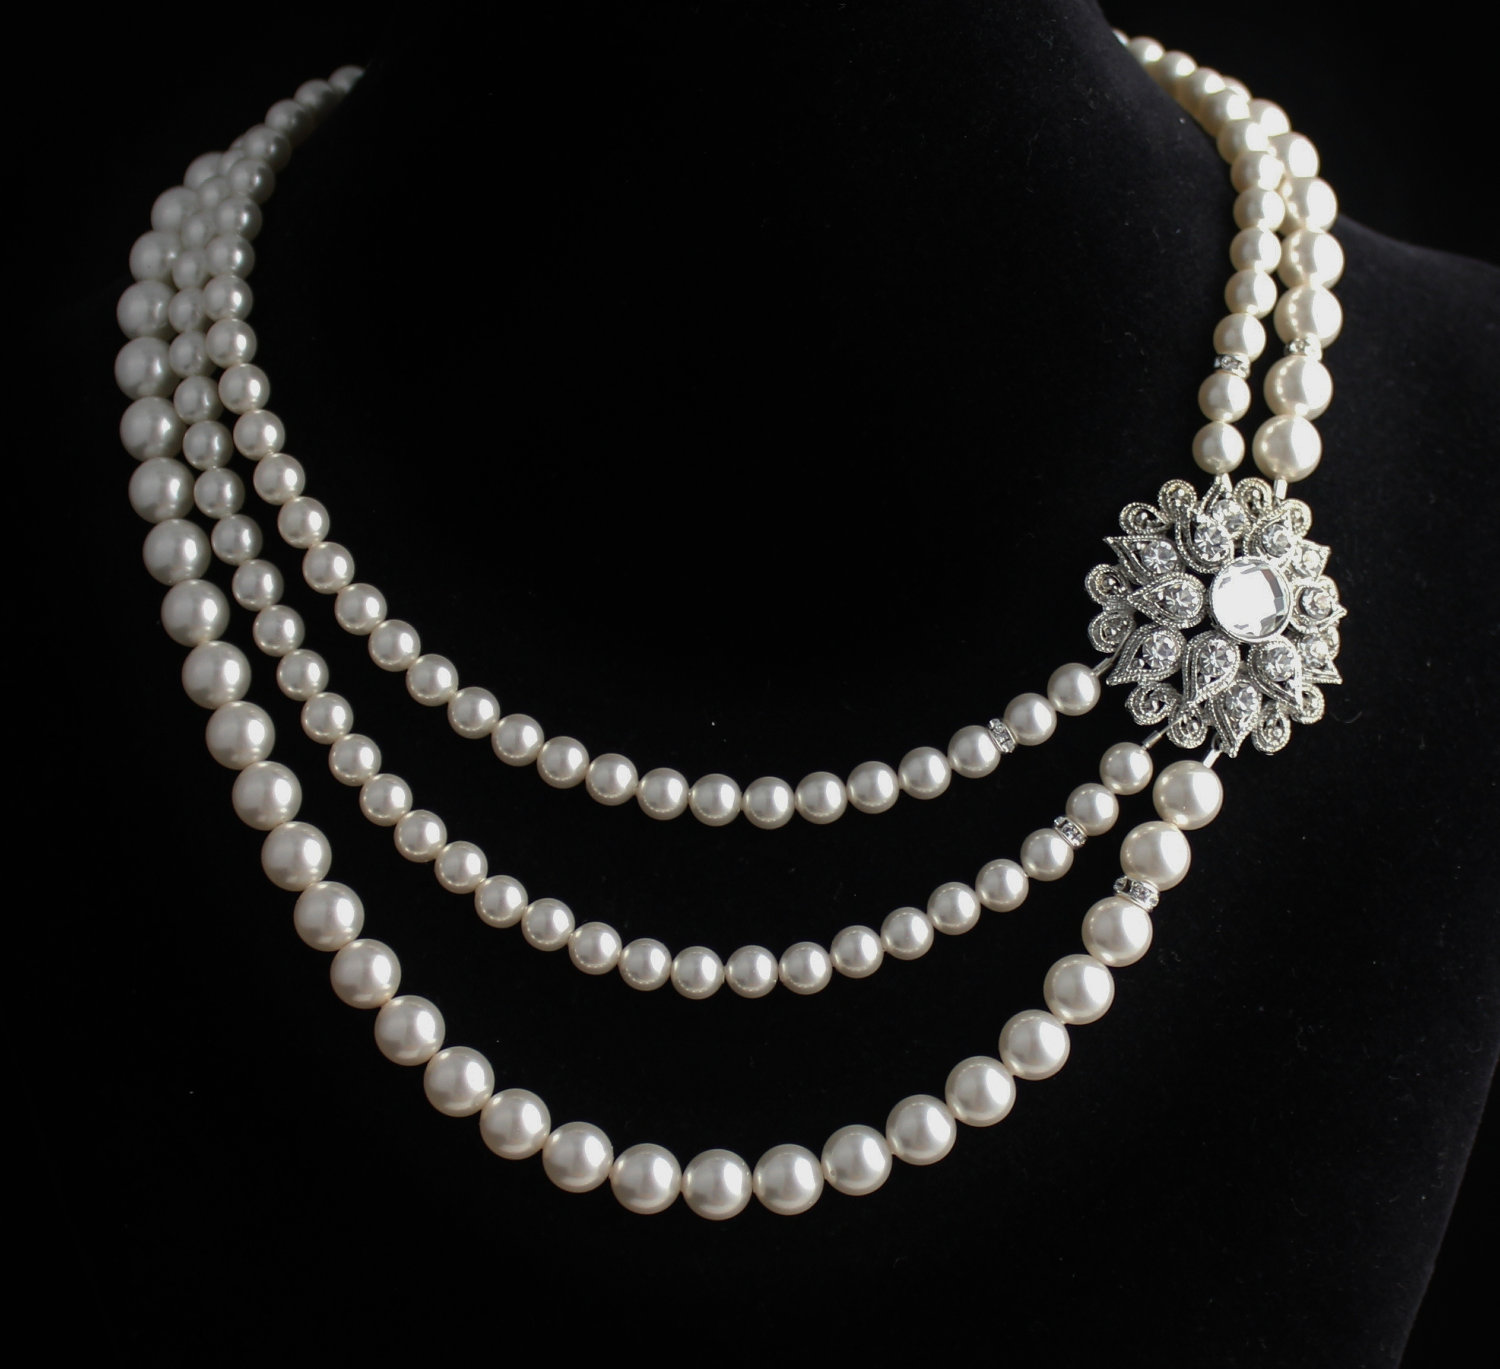 elizabethan bliss drop jewellery teardrop chain pearl pearls shakespeare shop collar white jewelry accessories necklace inspired pure